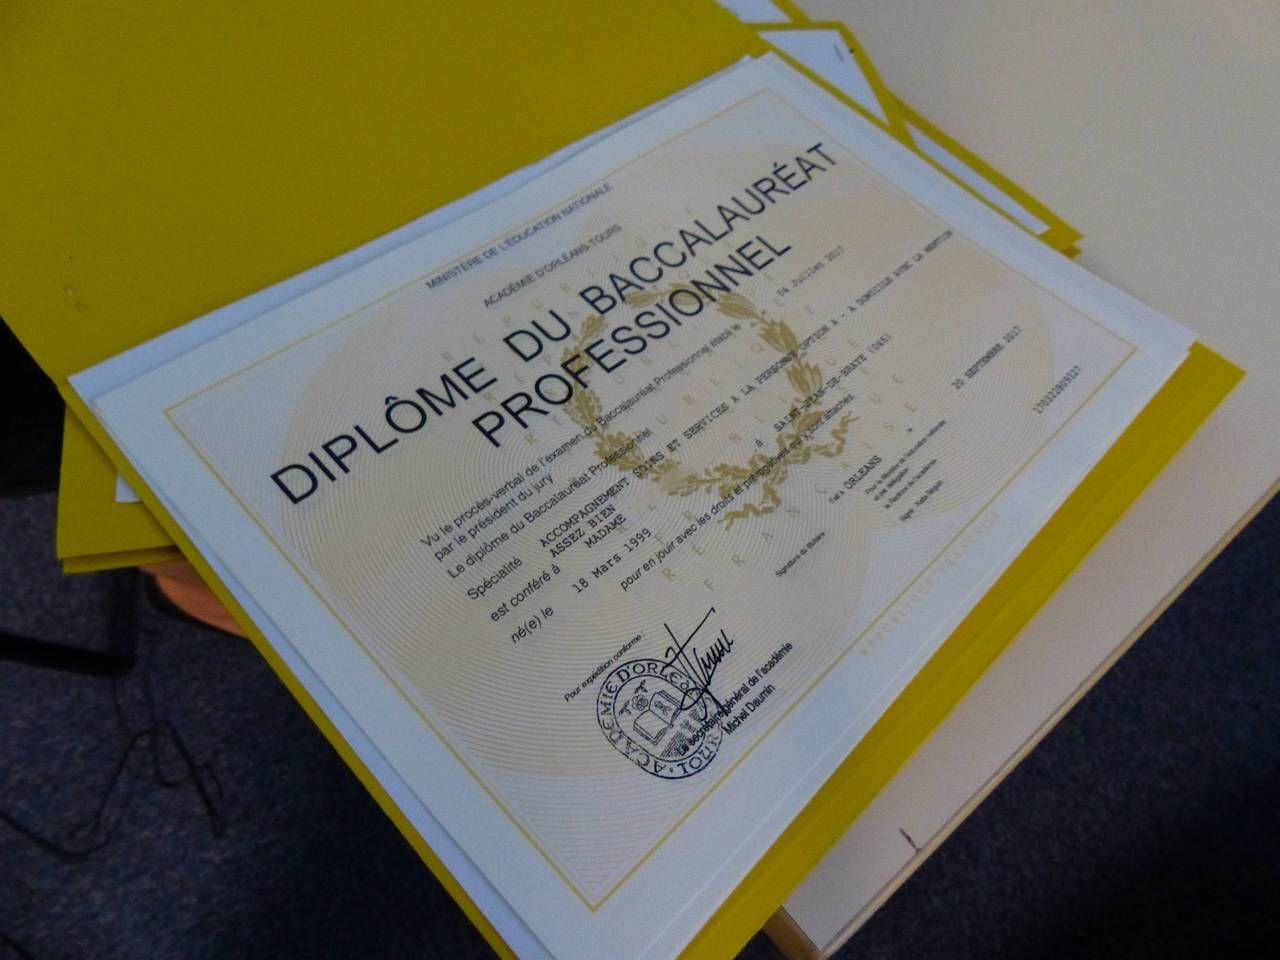 LP SCSE RemiseDiplomes 0010